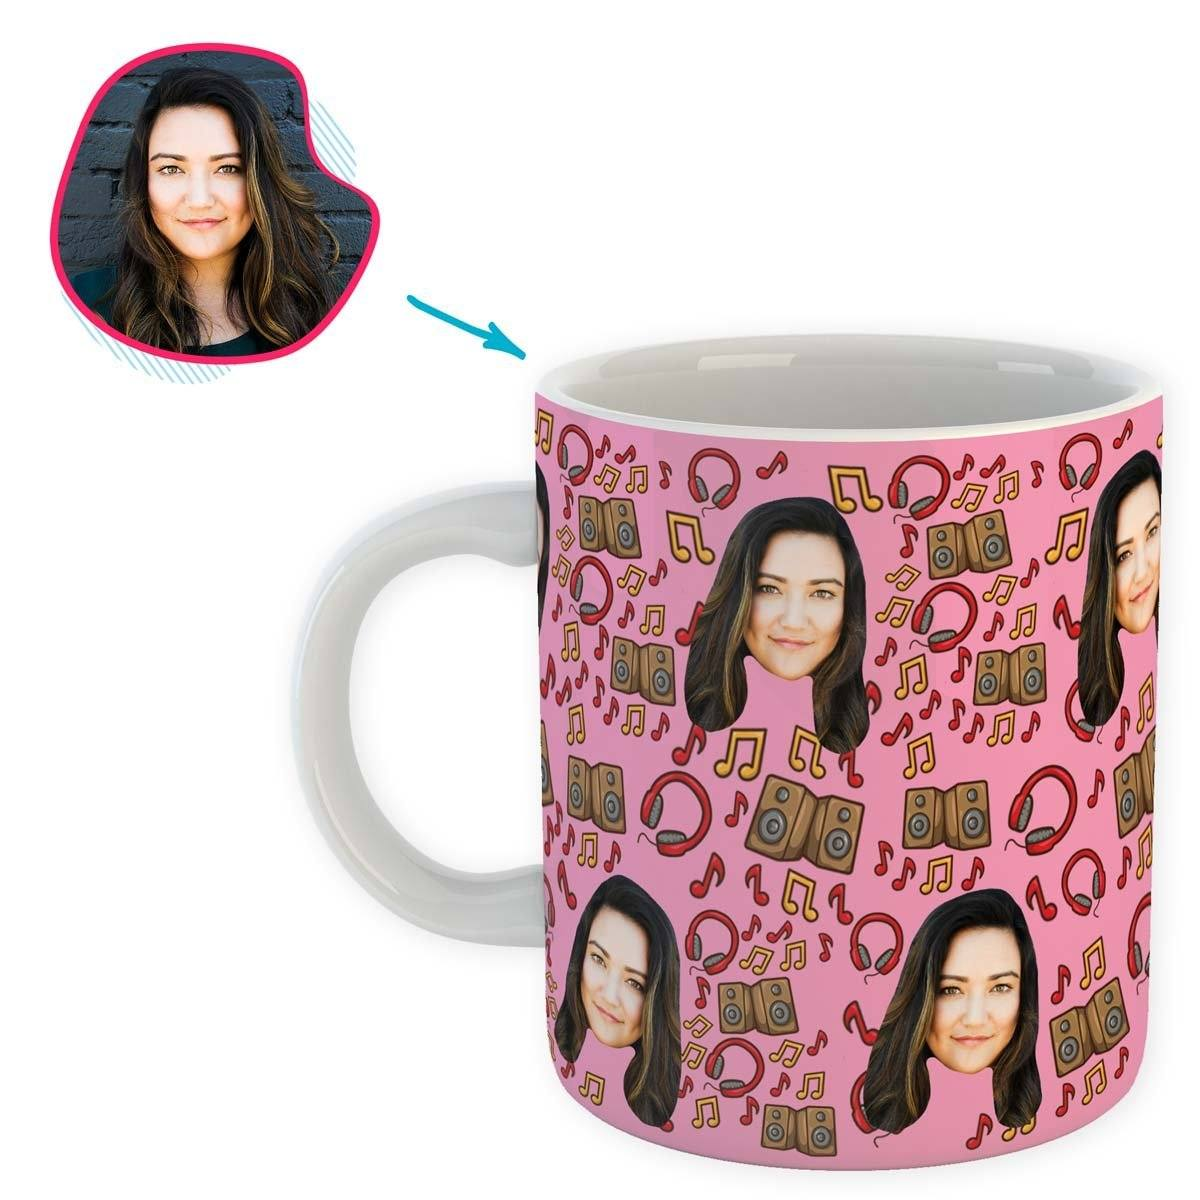 pink Music mug personalized with photo of face printed on it